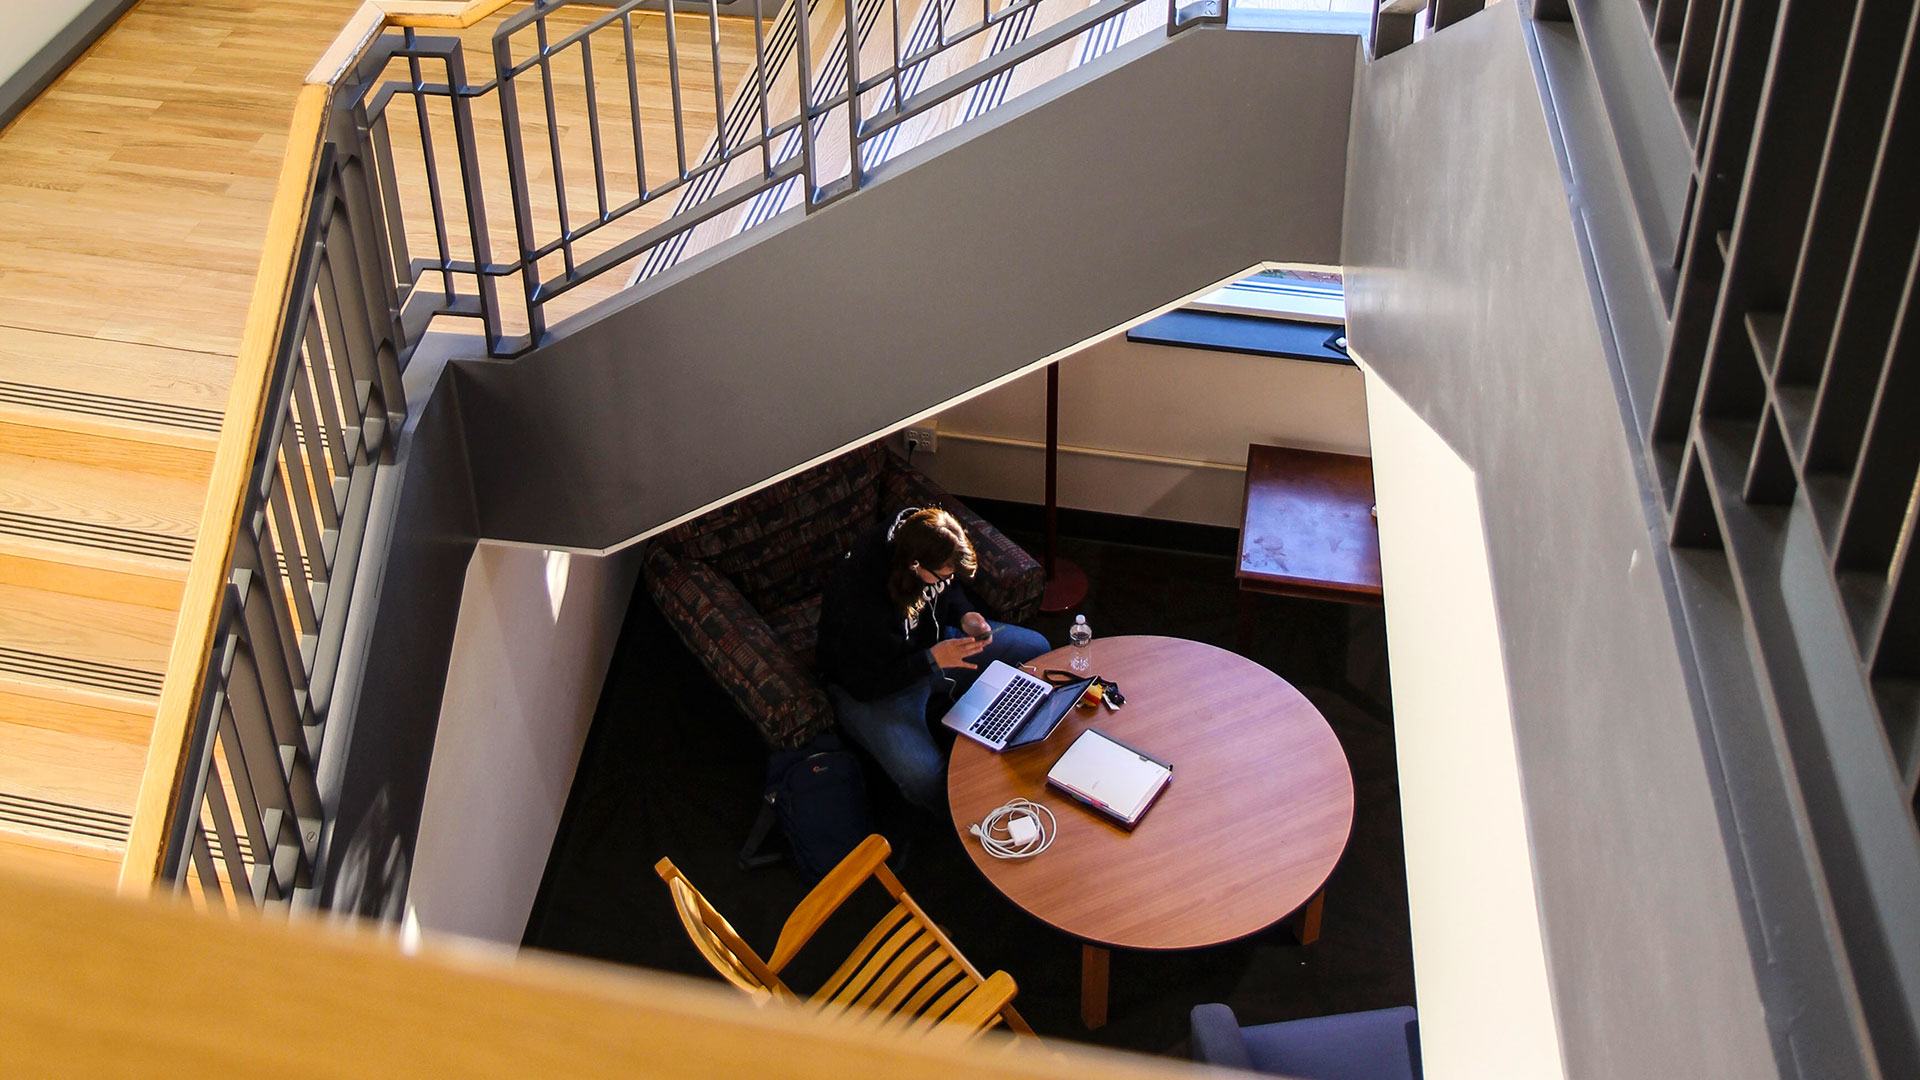 An SMCM student can be seen in the study nook under the 3rd floor stairs in the Hilda C. Landers Library